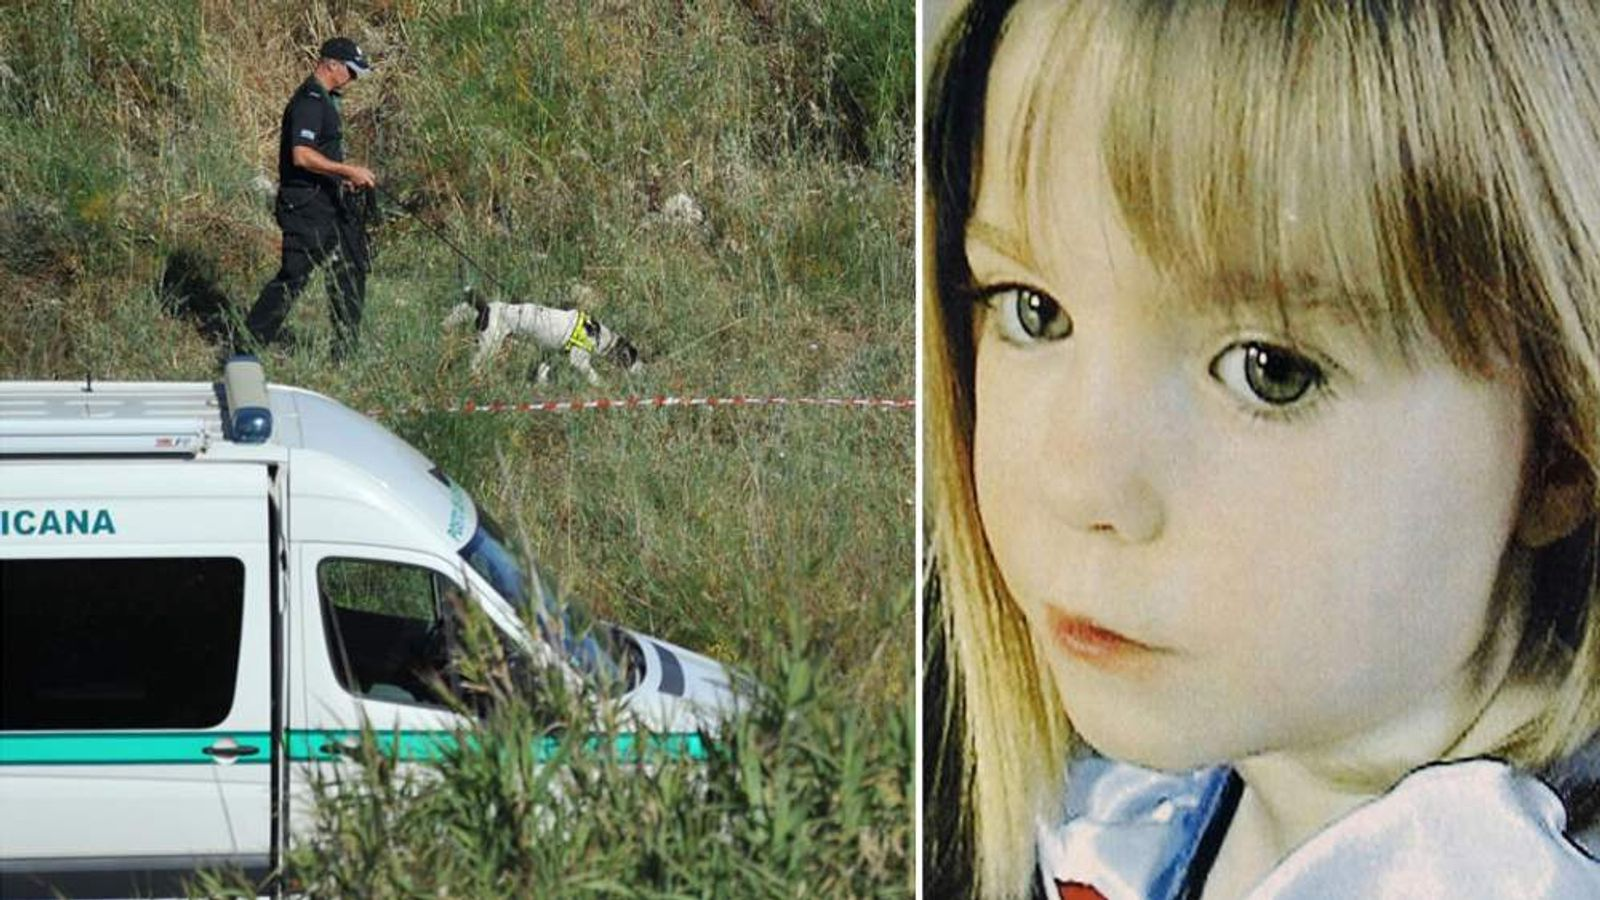 British detectives investigating the disappearance of Madeleine McCann (R) search a new area outside of Praia da Luz